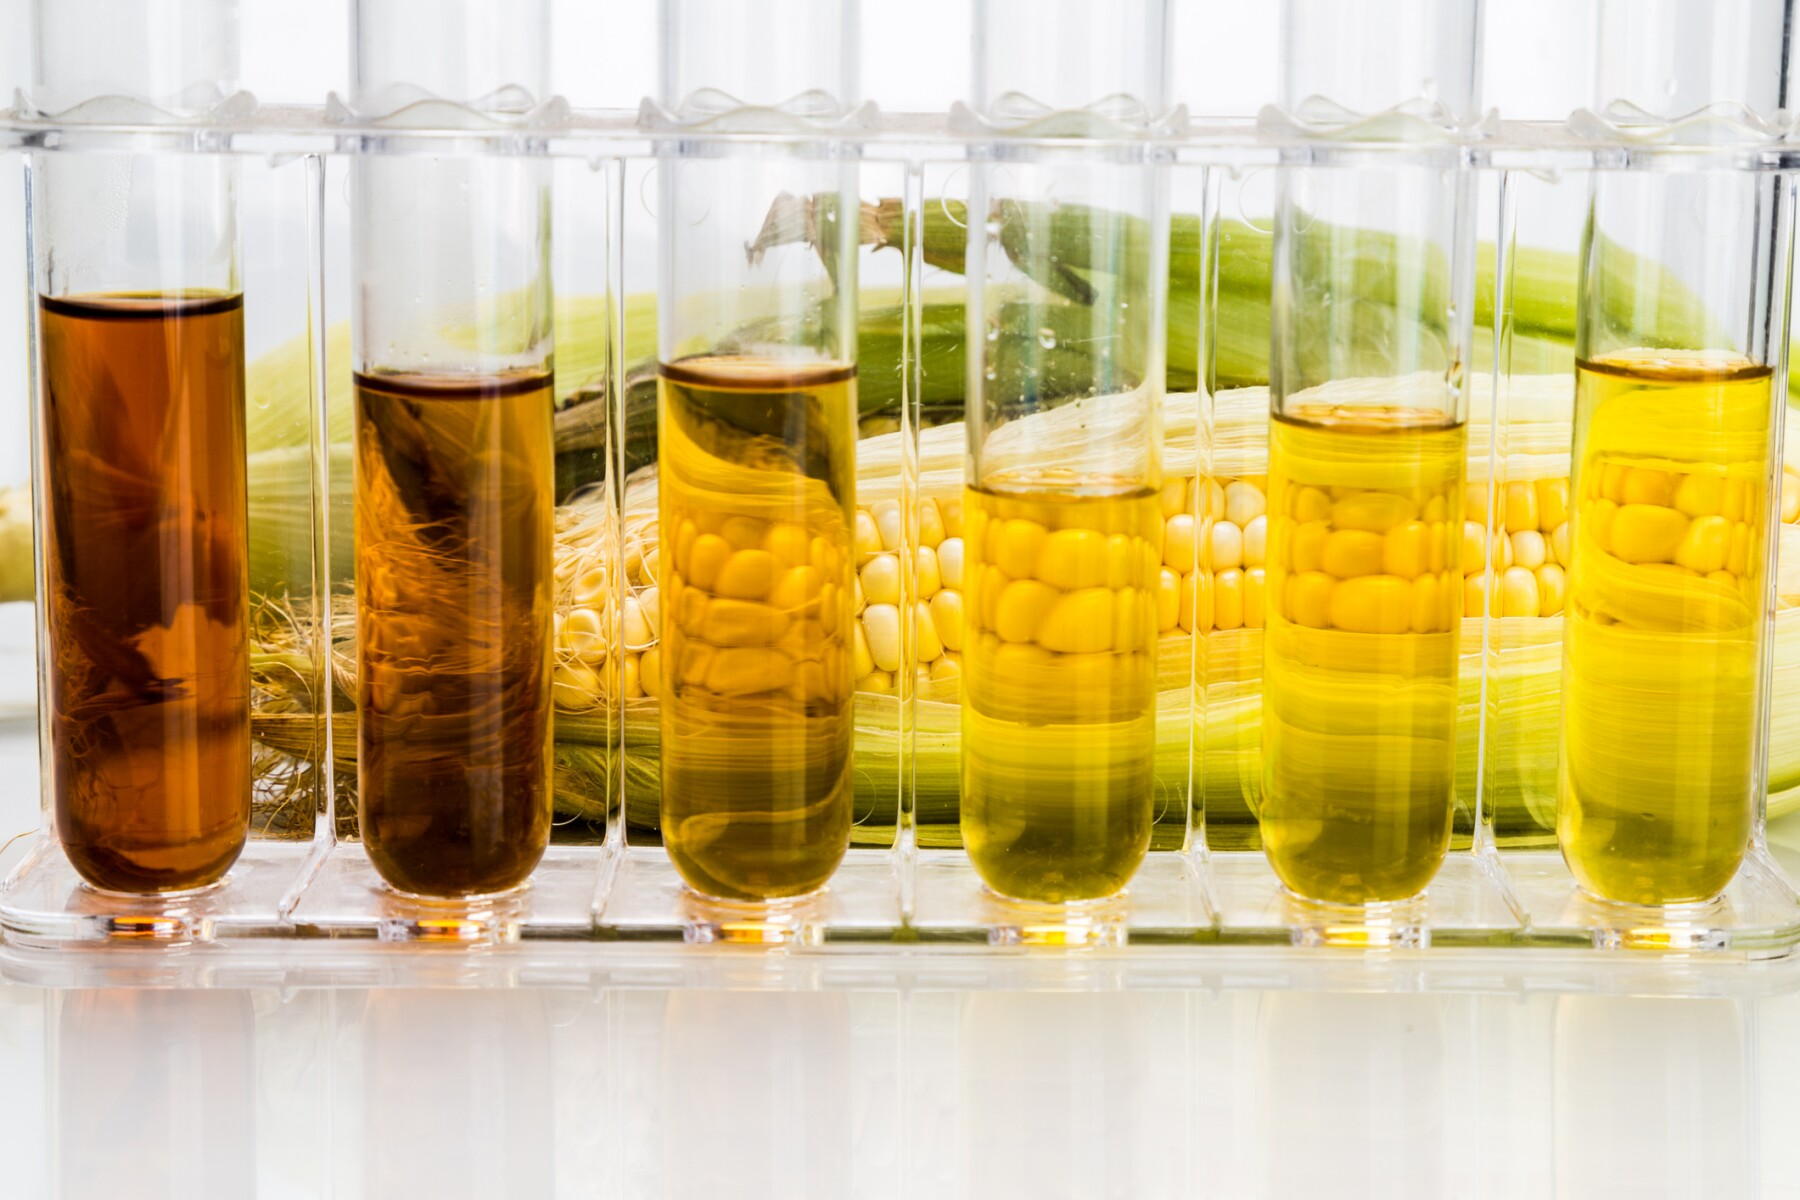 Corn derived ethanol biofuel with test tubes on white background